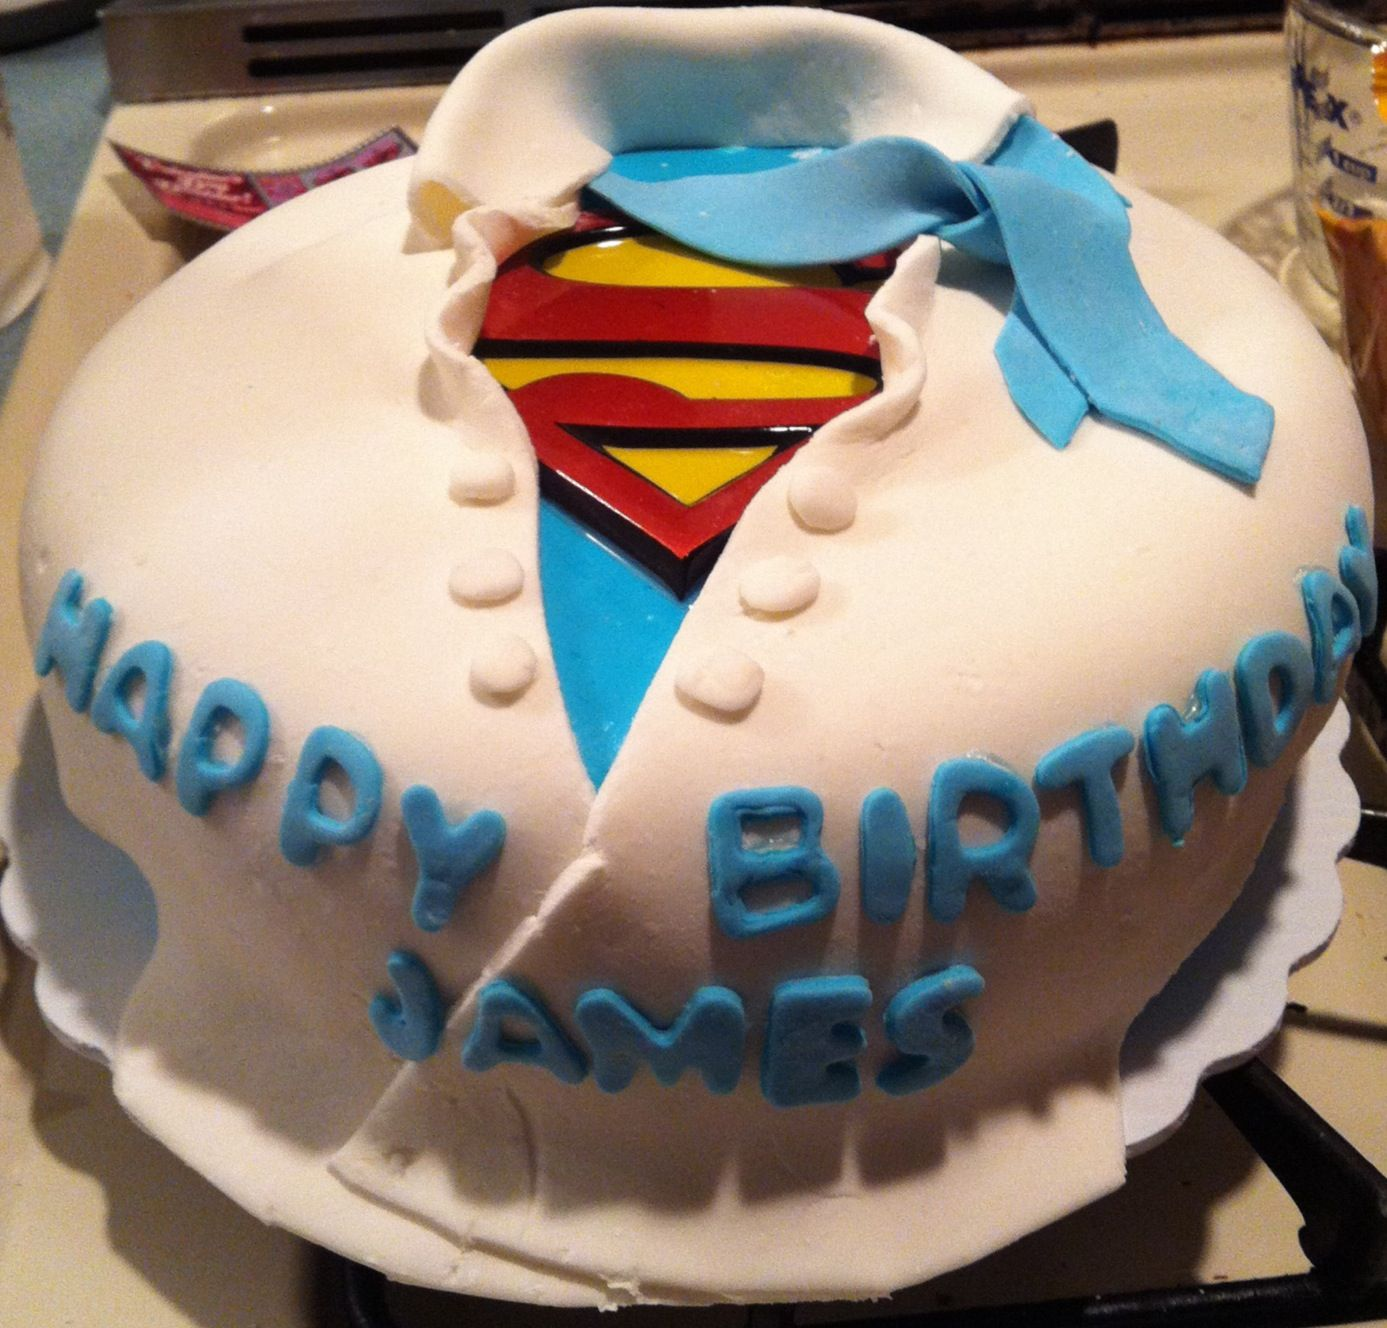 Birthday Cake Images Hd For Husband : My husbands superman cake I made for his birthday Cake ...